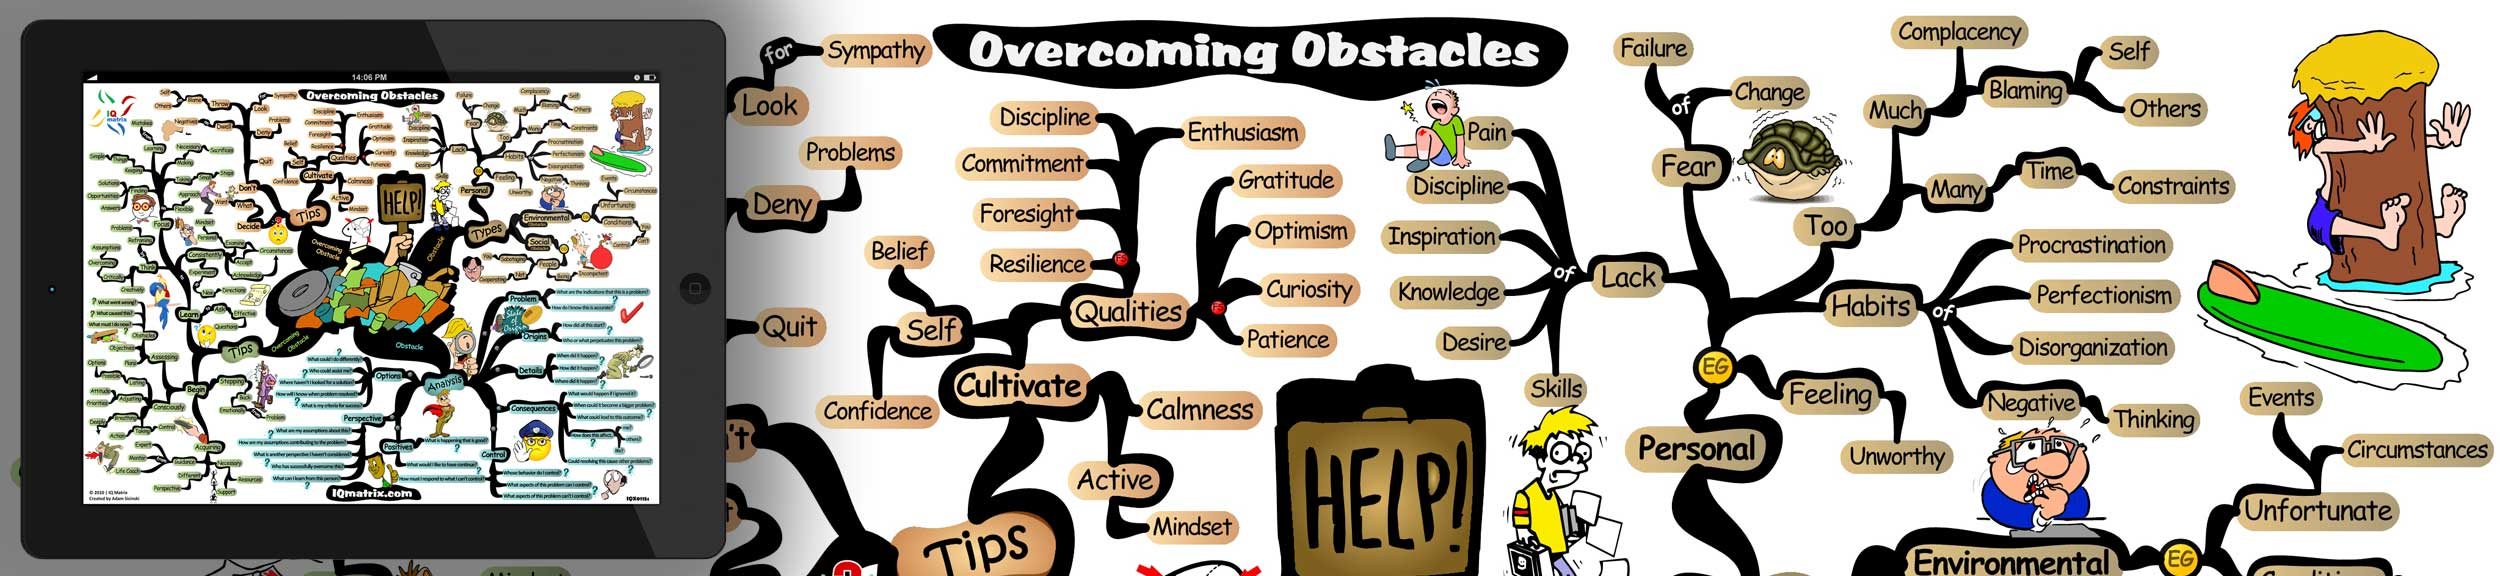 How To Overcome The Obstacles That Are Holding Your Goals Hostage